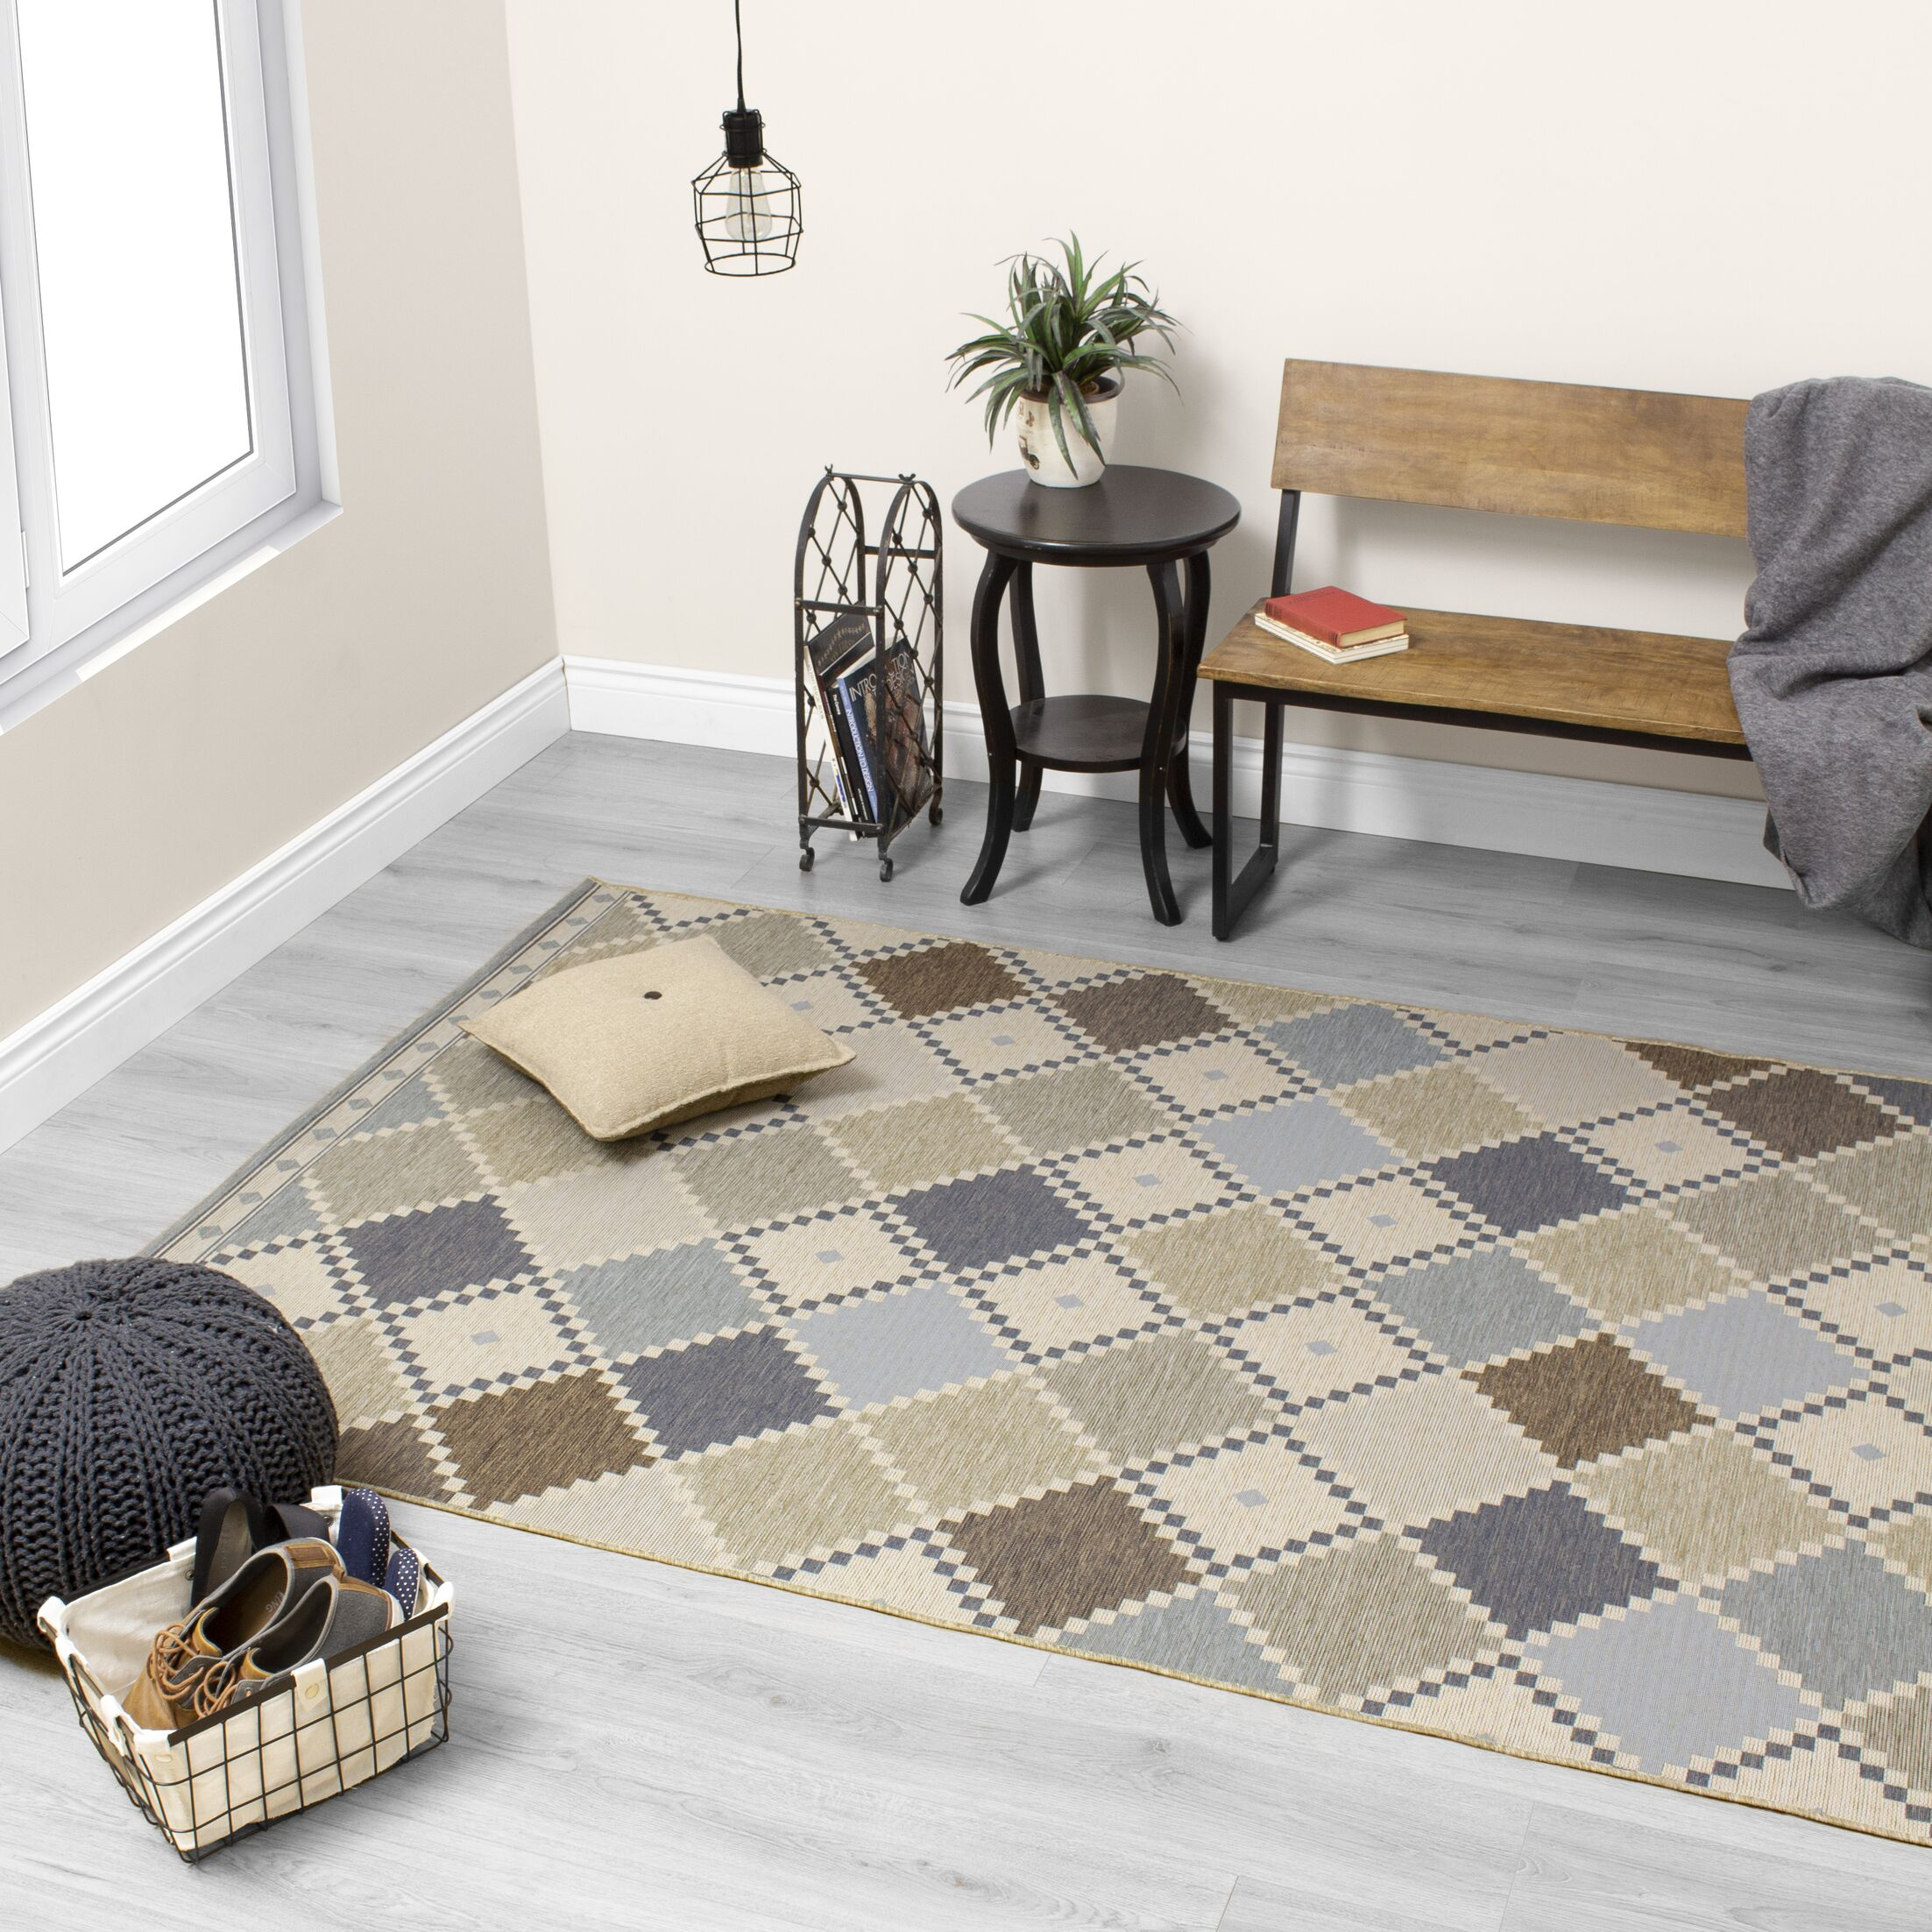 Kayleigh Colorful Checkerboard Quilt Gray Indoor/Outdoor Area Rug Rug Size: Rectangle 8' x 11'2''